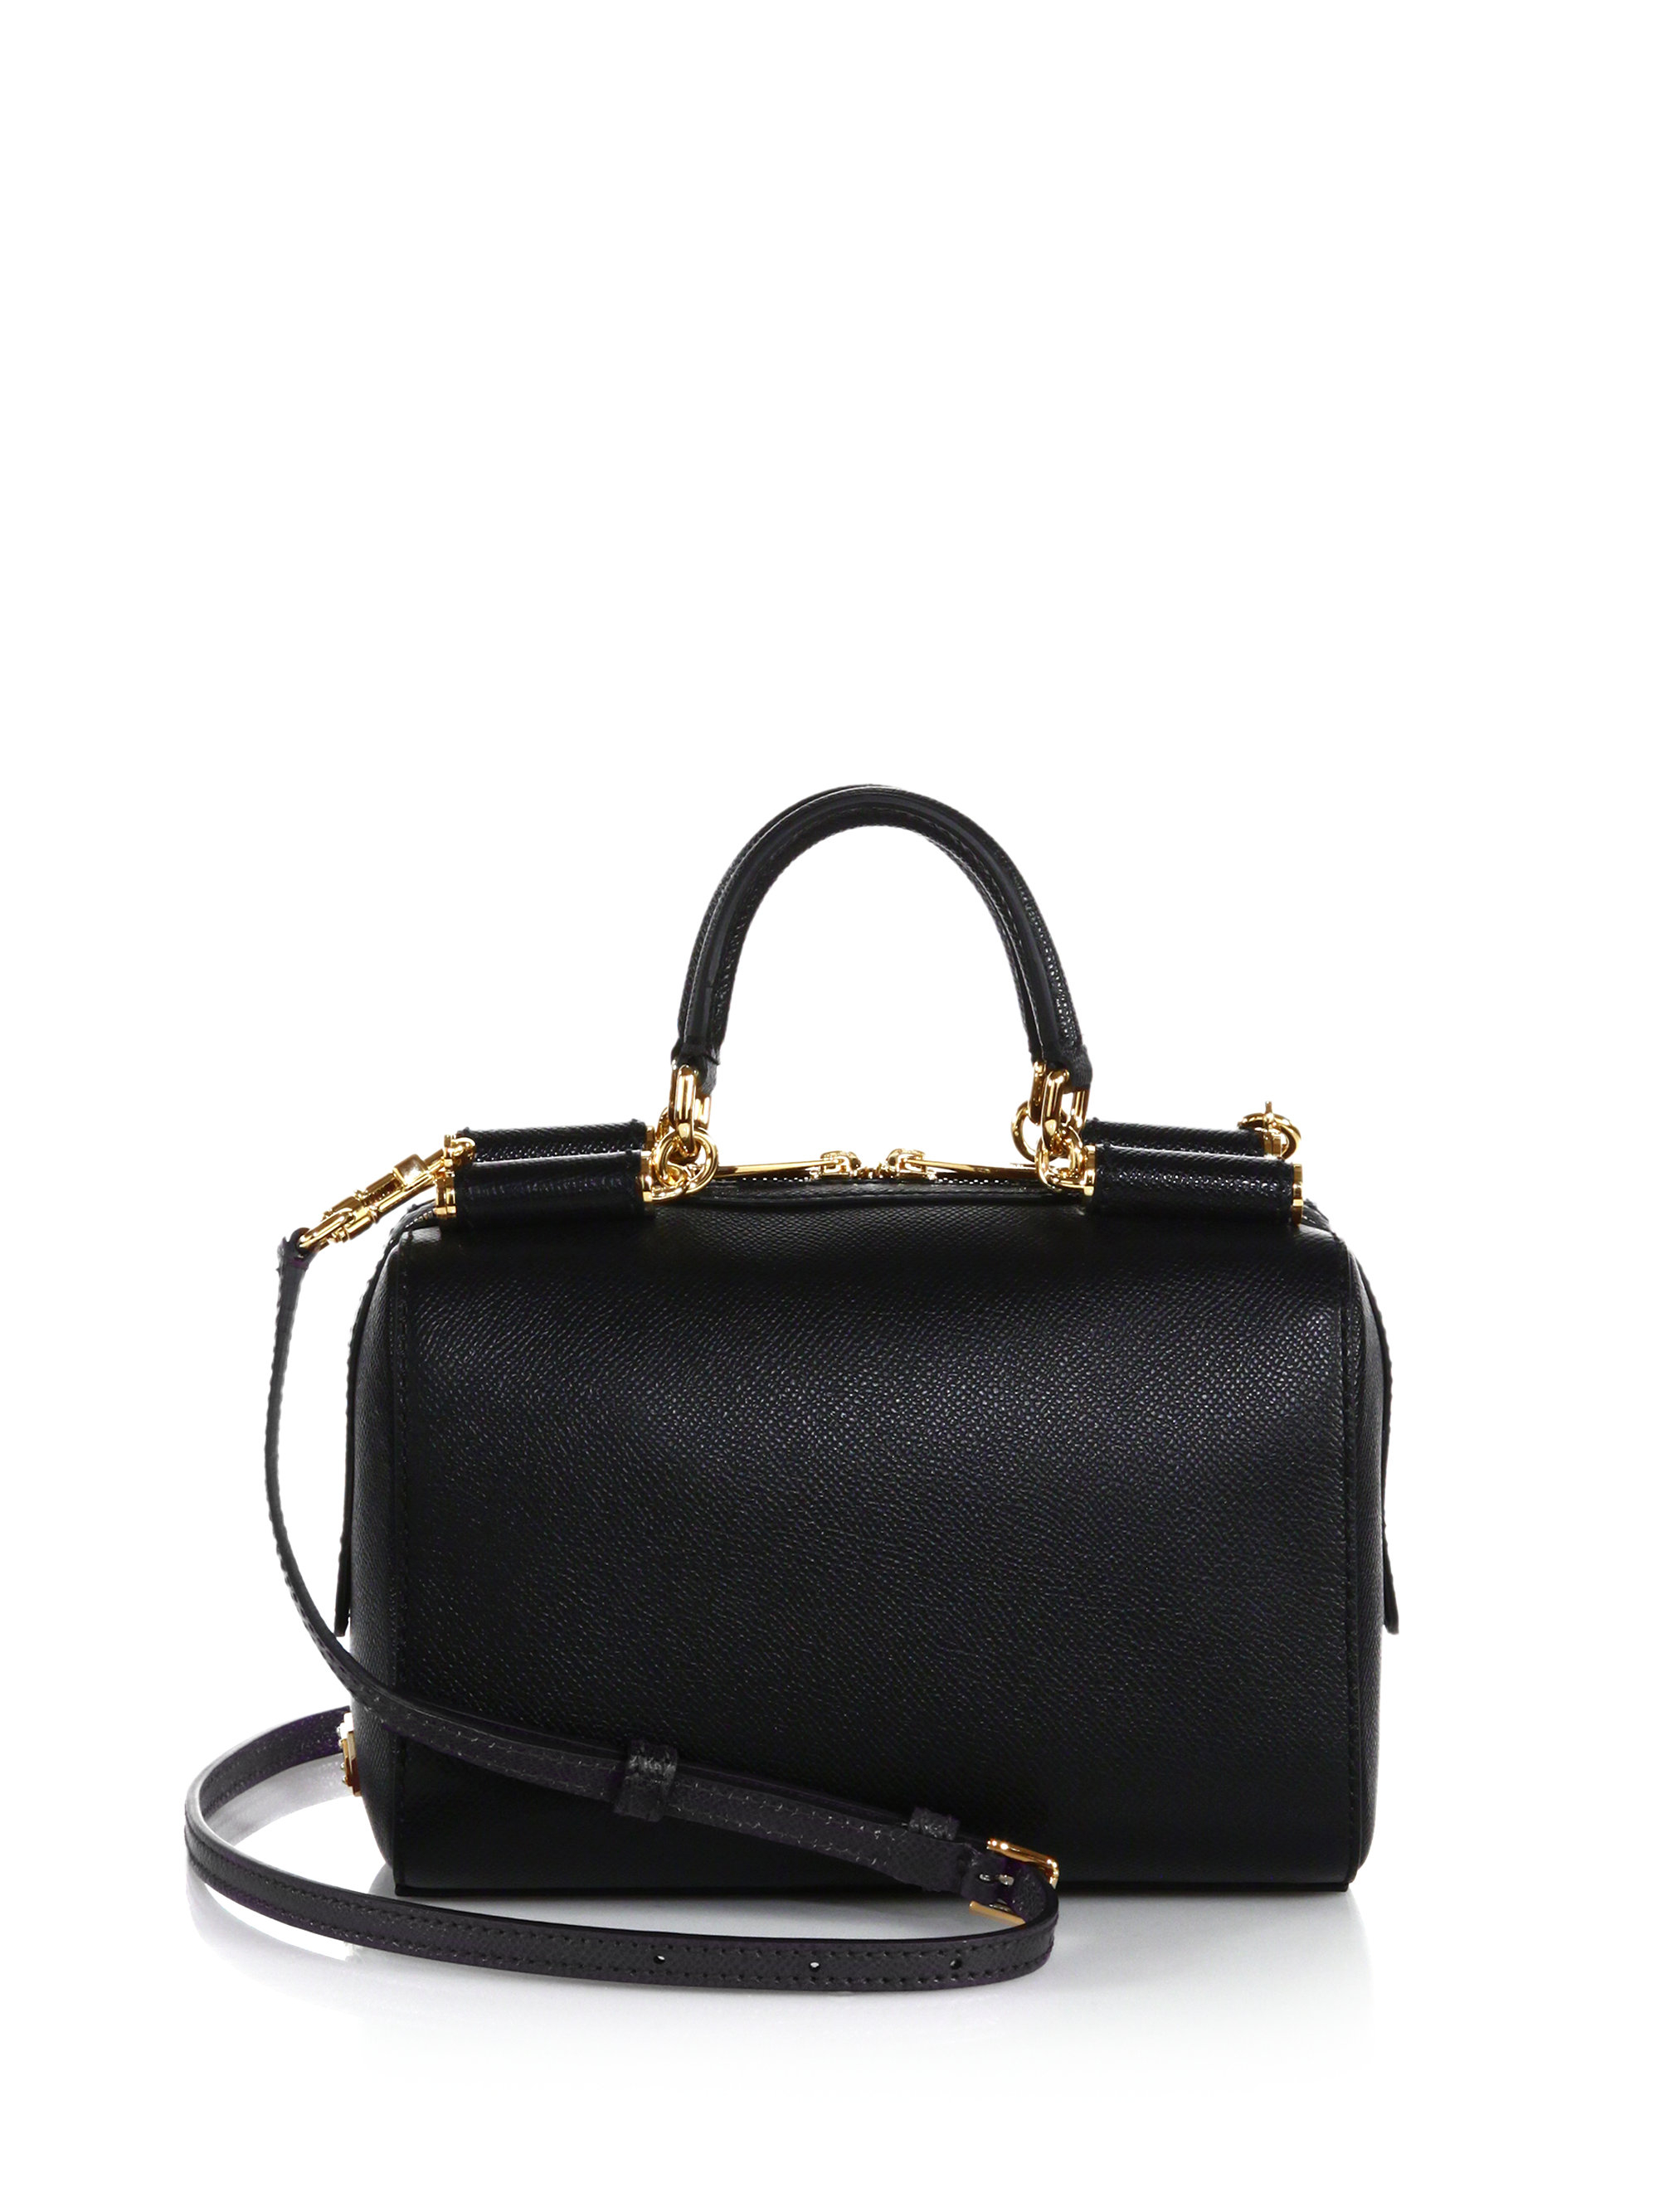 Dolce & Gabana Bowling Bag Low Cost Cheap Online Wiki Cheap Price Clearance Nicekicks Cheap Sale Countdown Package xC6Xq